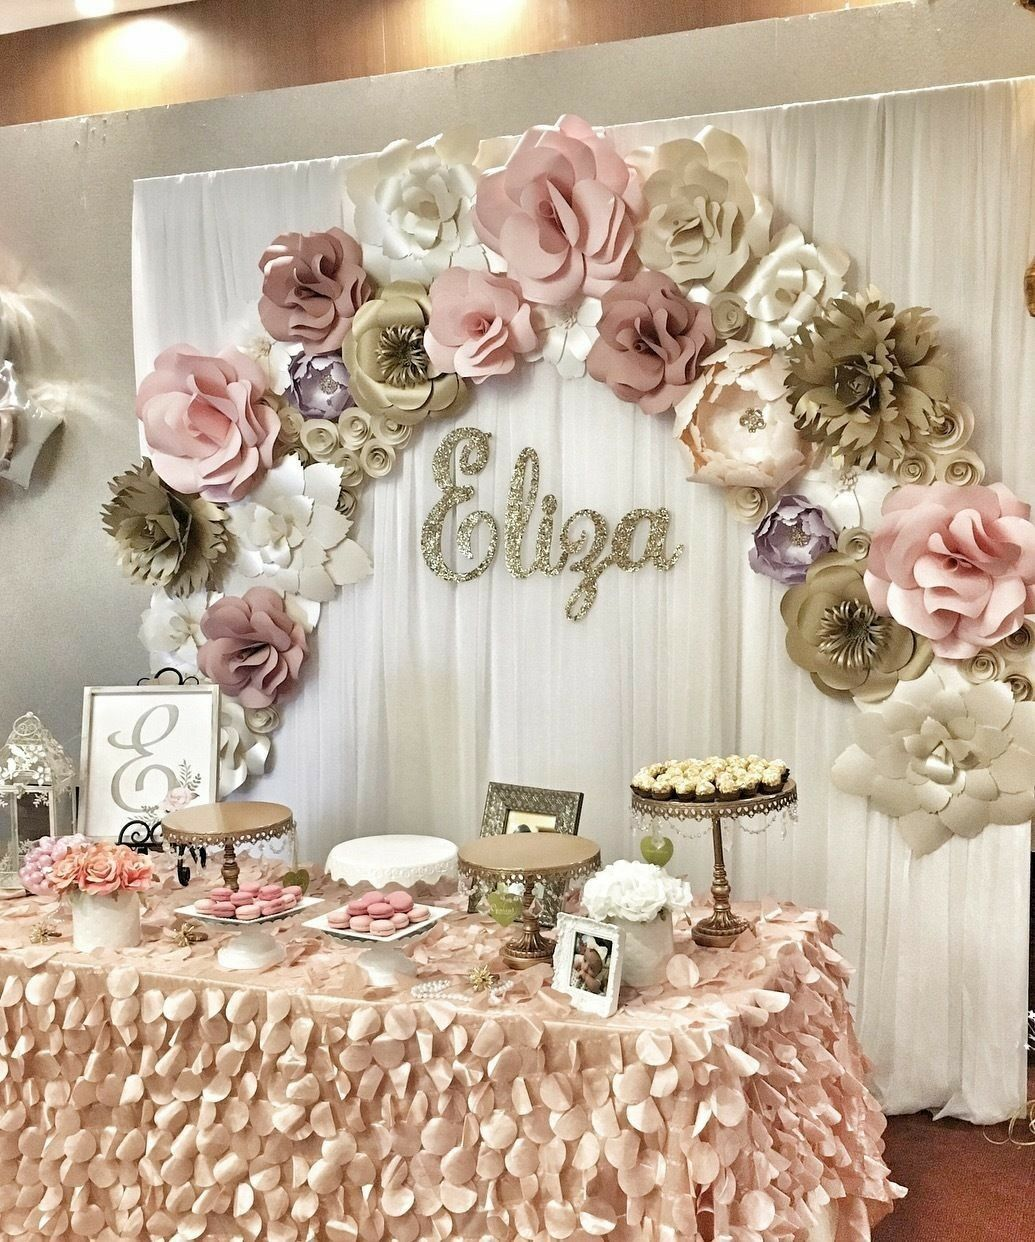 Pin by Amanda Navarrete on Flowers | Pinterest | Pearl baby shower ...